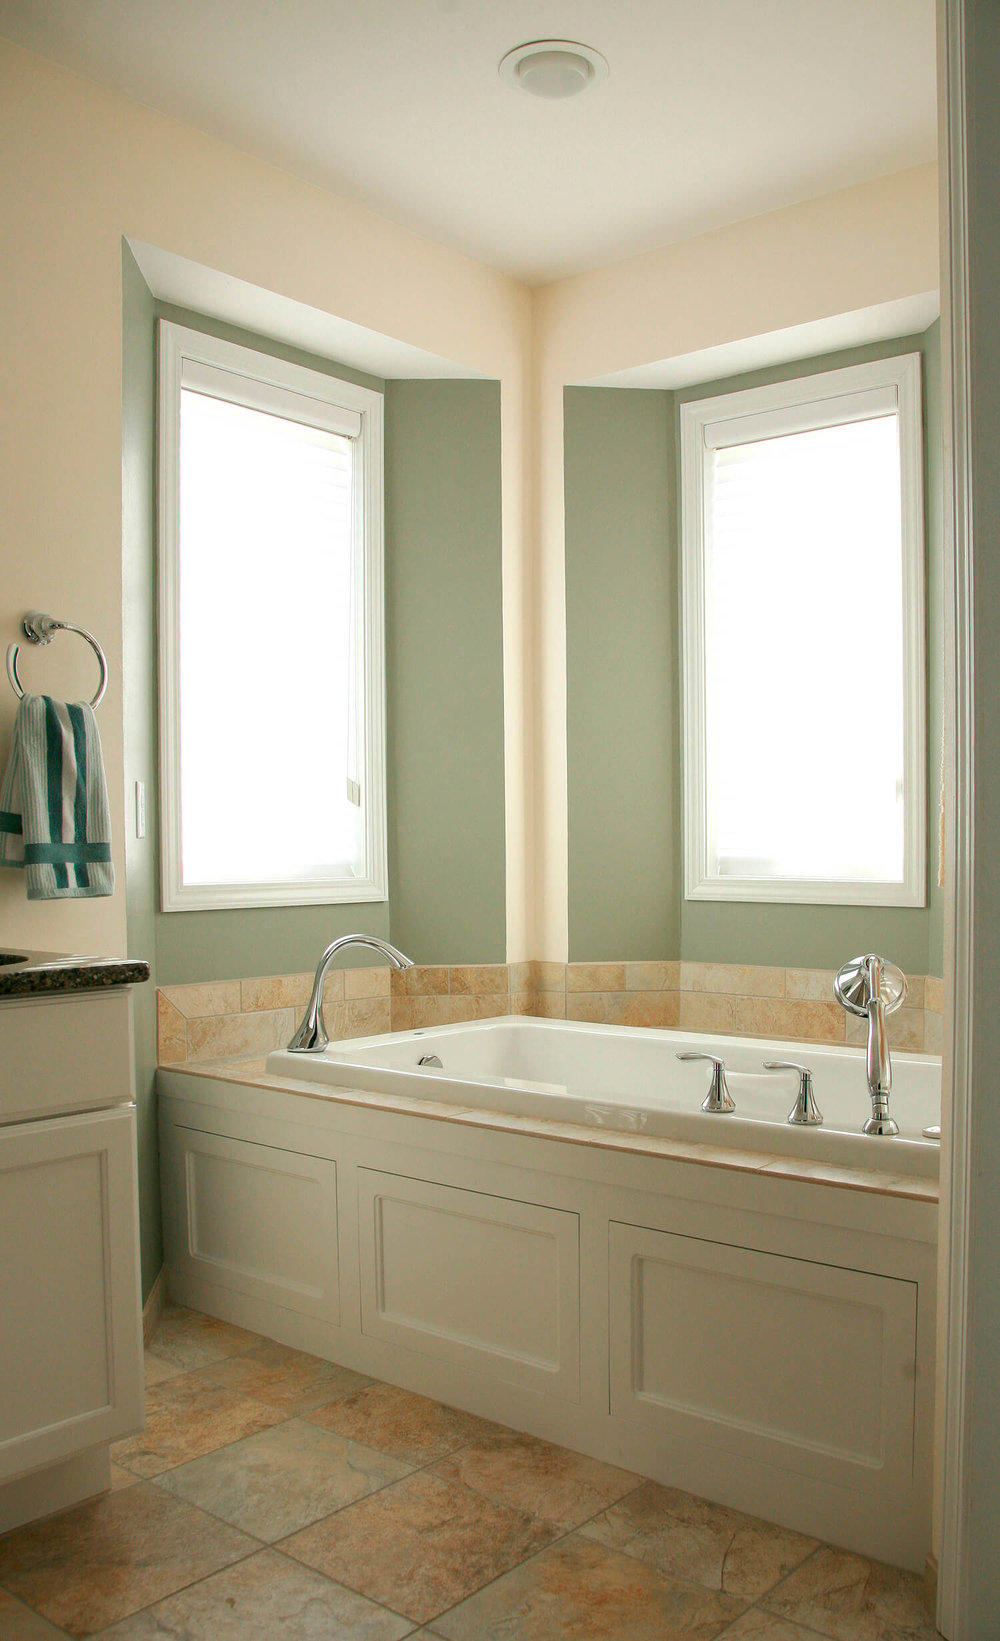 bath-laundry-remodel-madison-monona-middleton-verona-wisconsin-5.jpg